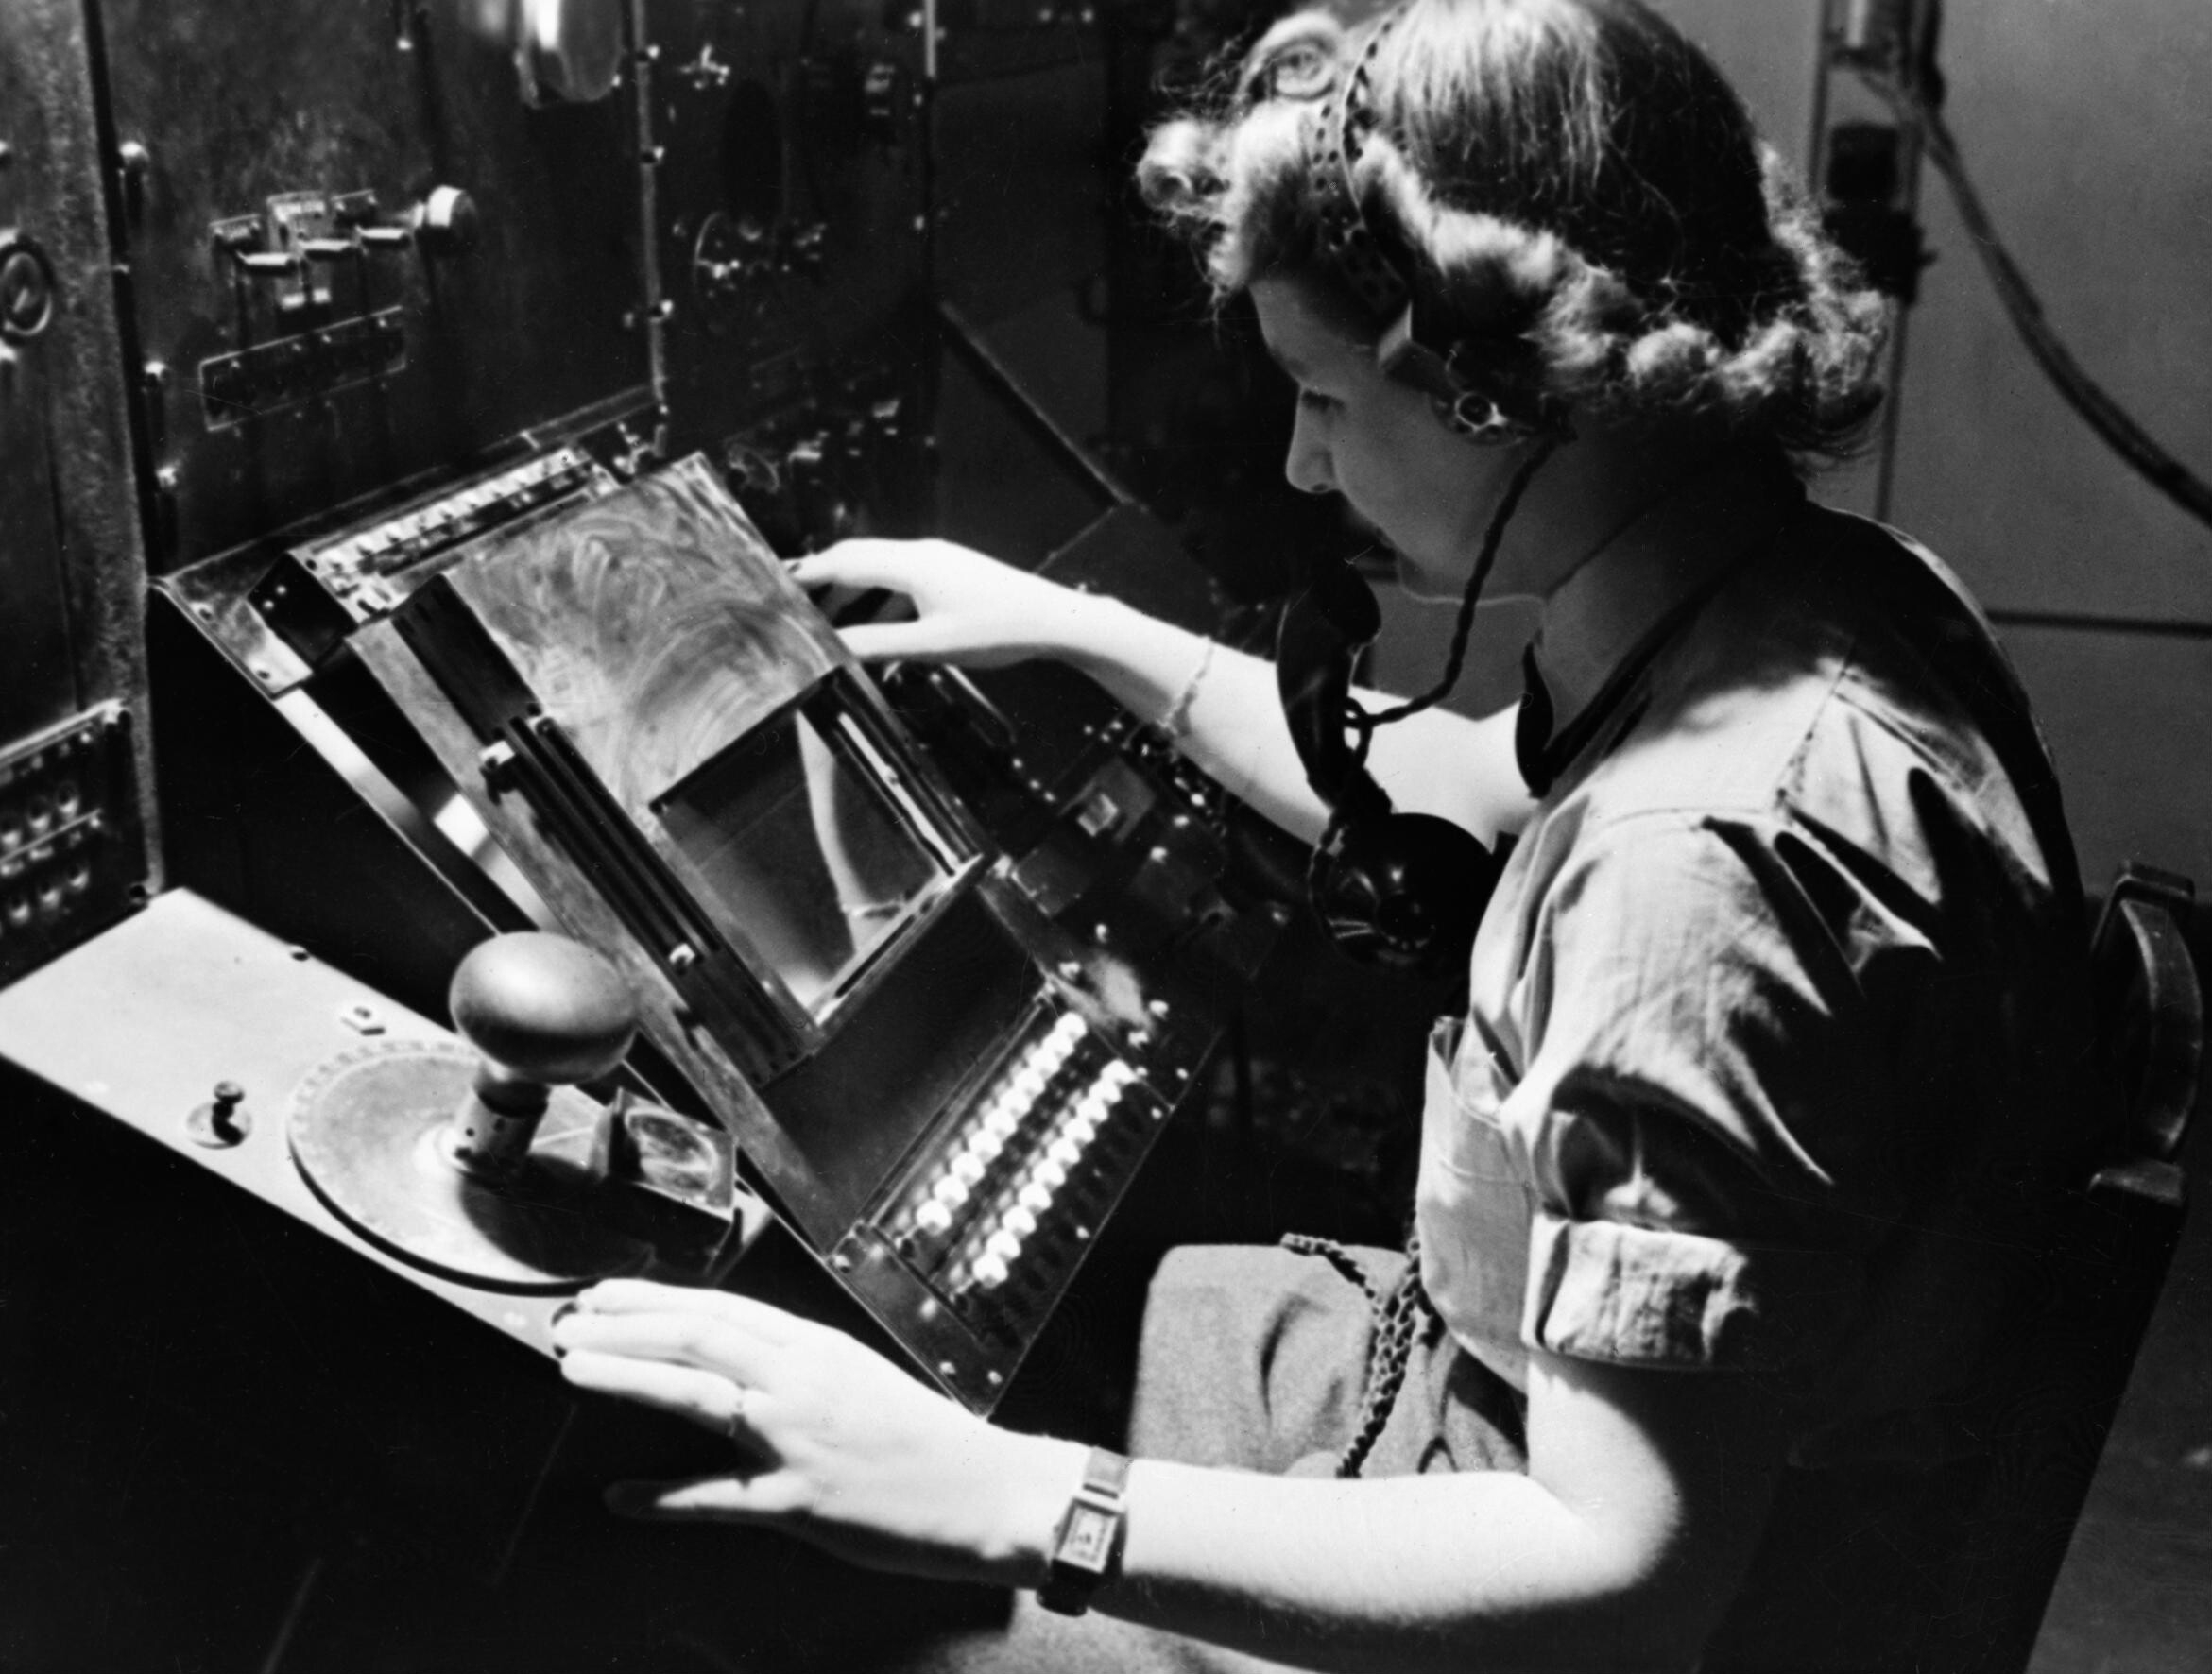 Chain Home: WAAF radar operator Denise Miley plotting aircraft on the cathode ray tube of an RF7 Receiver in the Receiver Room at Bawdsey CH. (Wikimedia Commons)